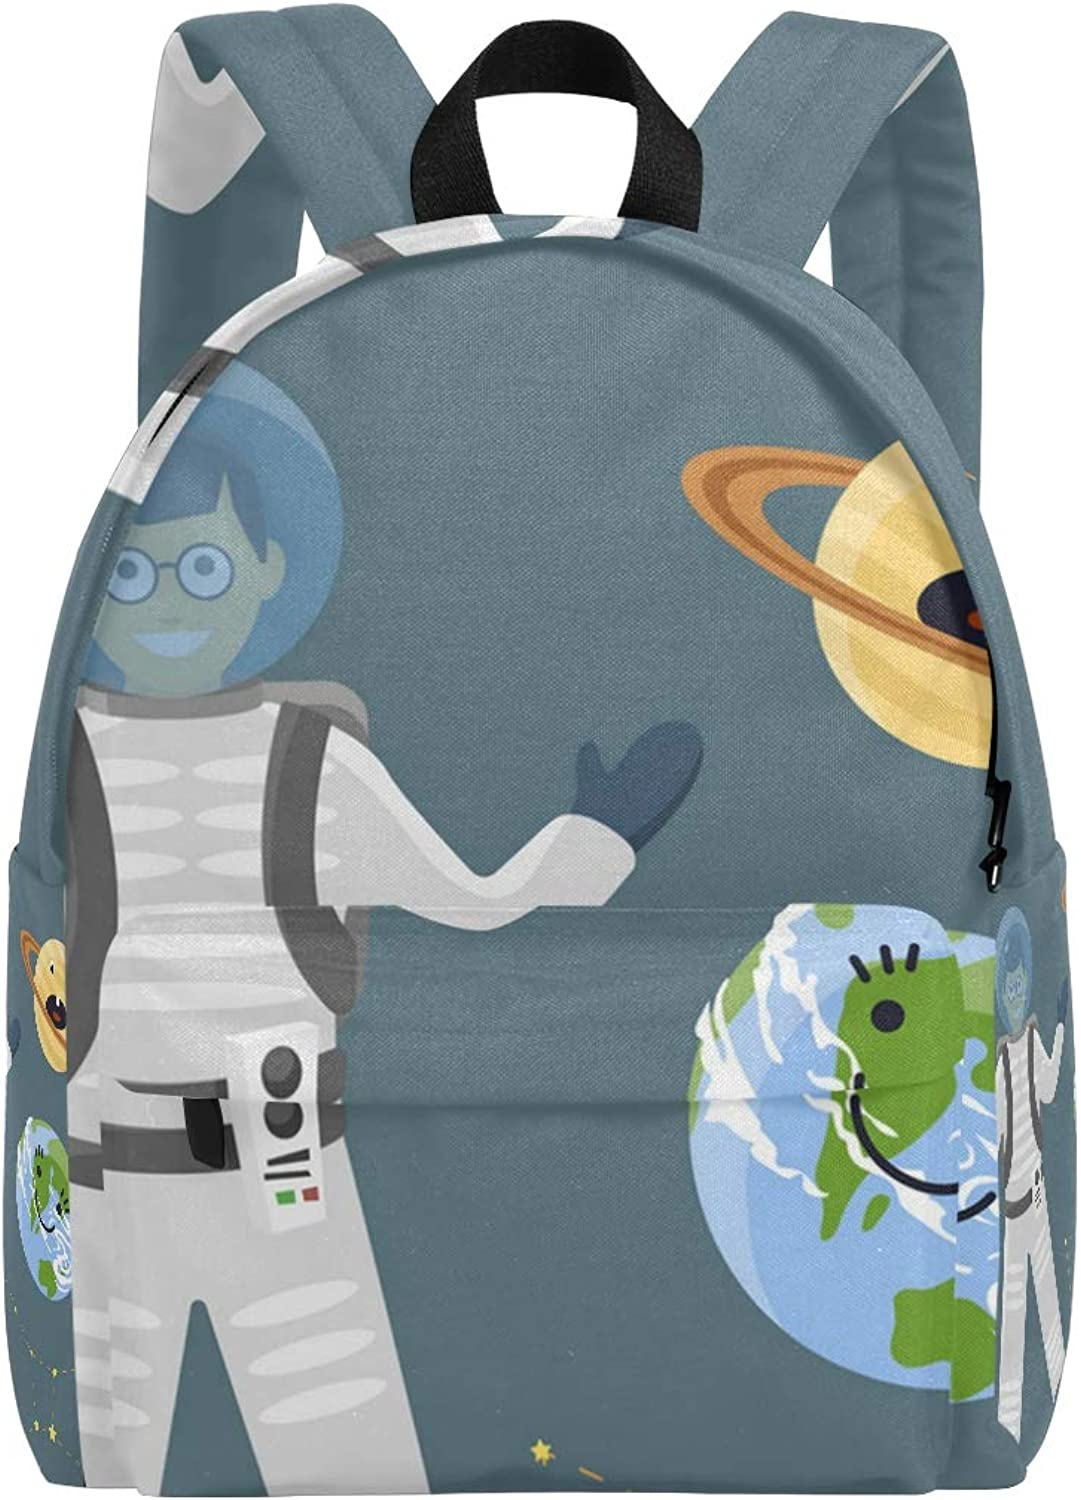 College Bookbag Cool Astronaut Dad and Earth Print Schoolbag Unisex Backpack Hiking Daypacks Travel Sports Bags